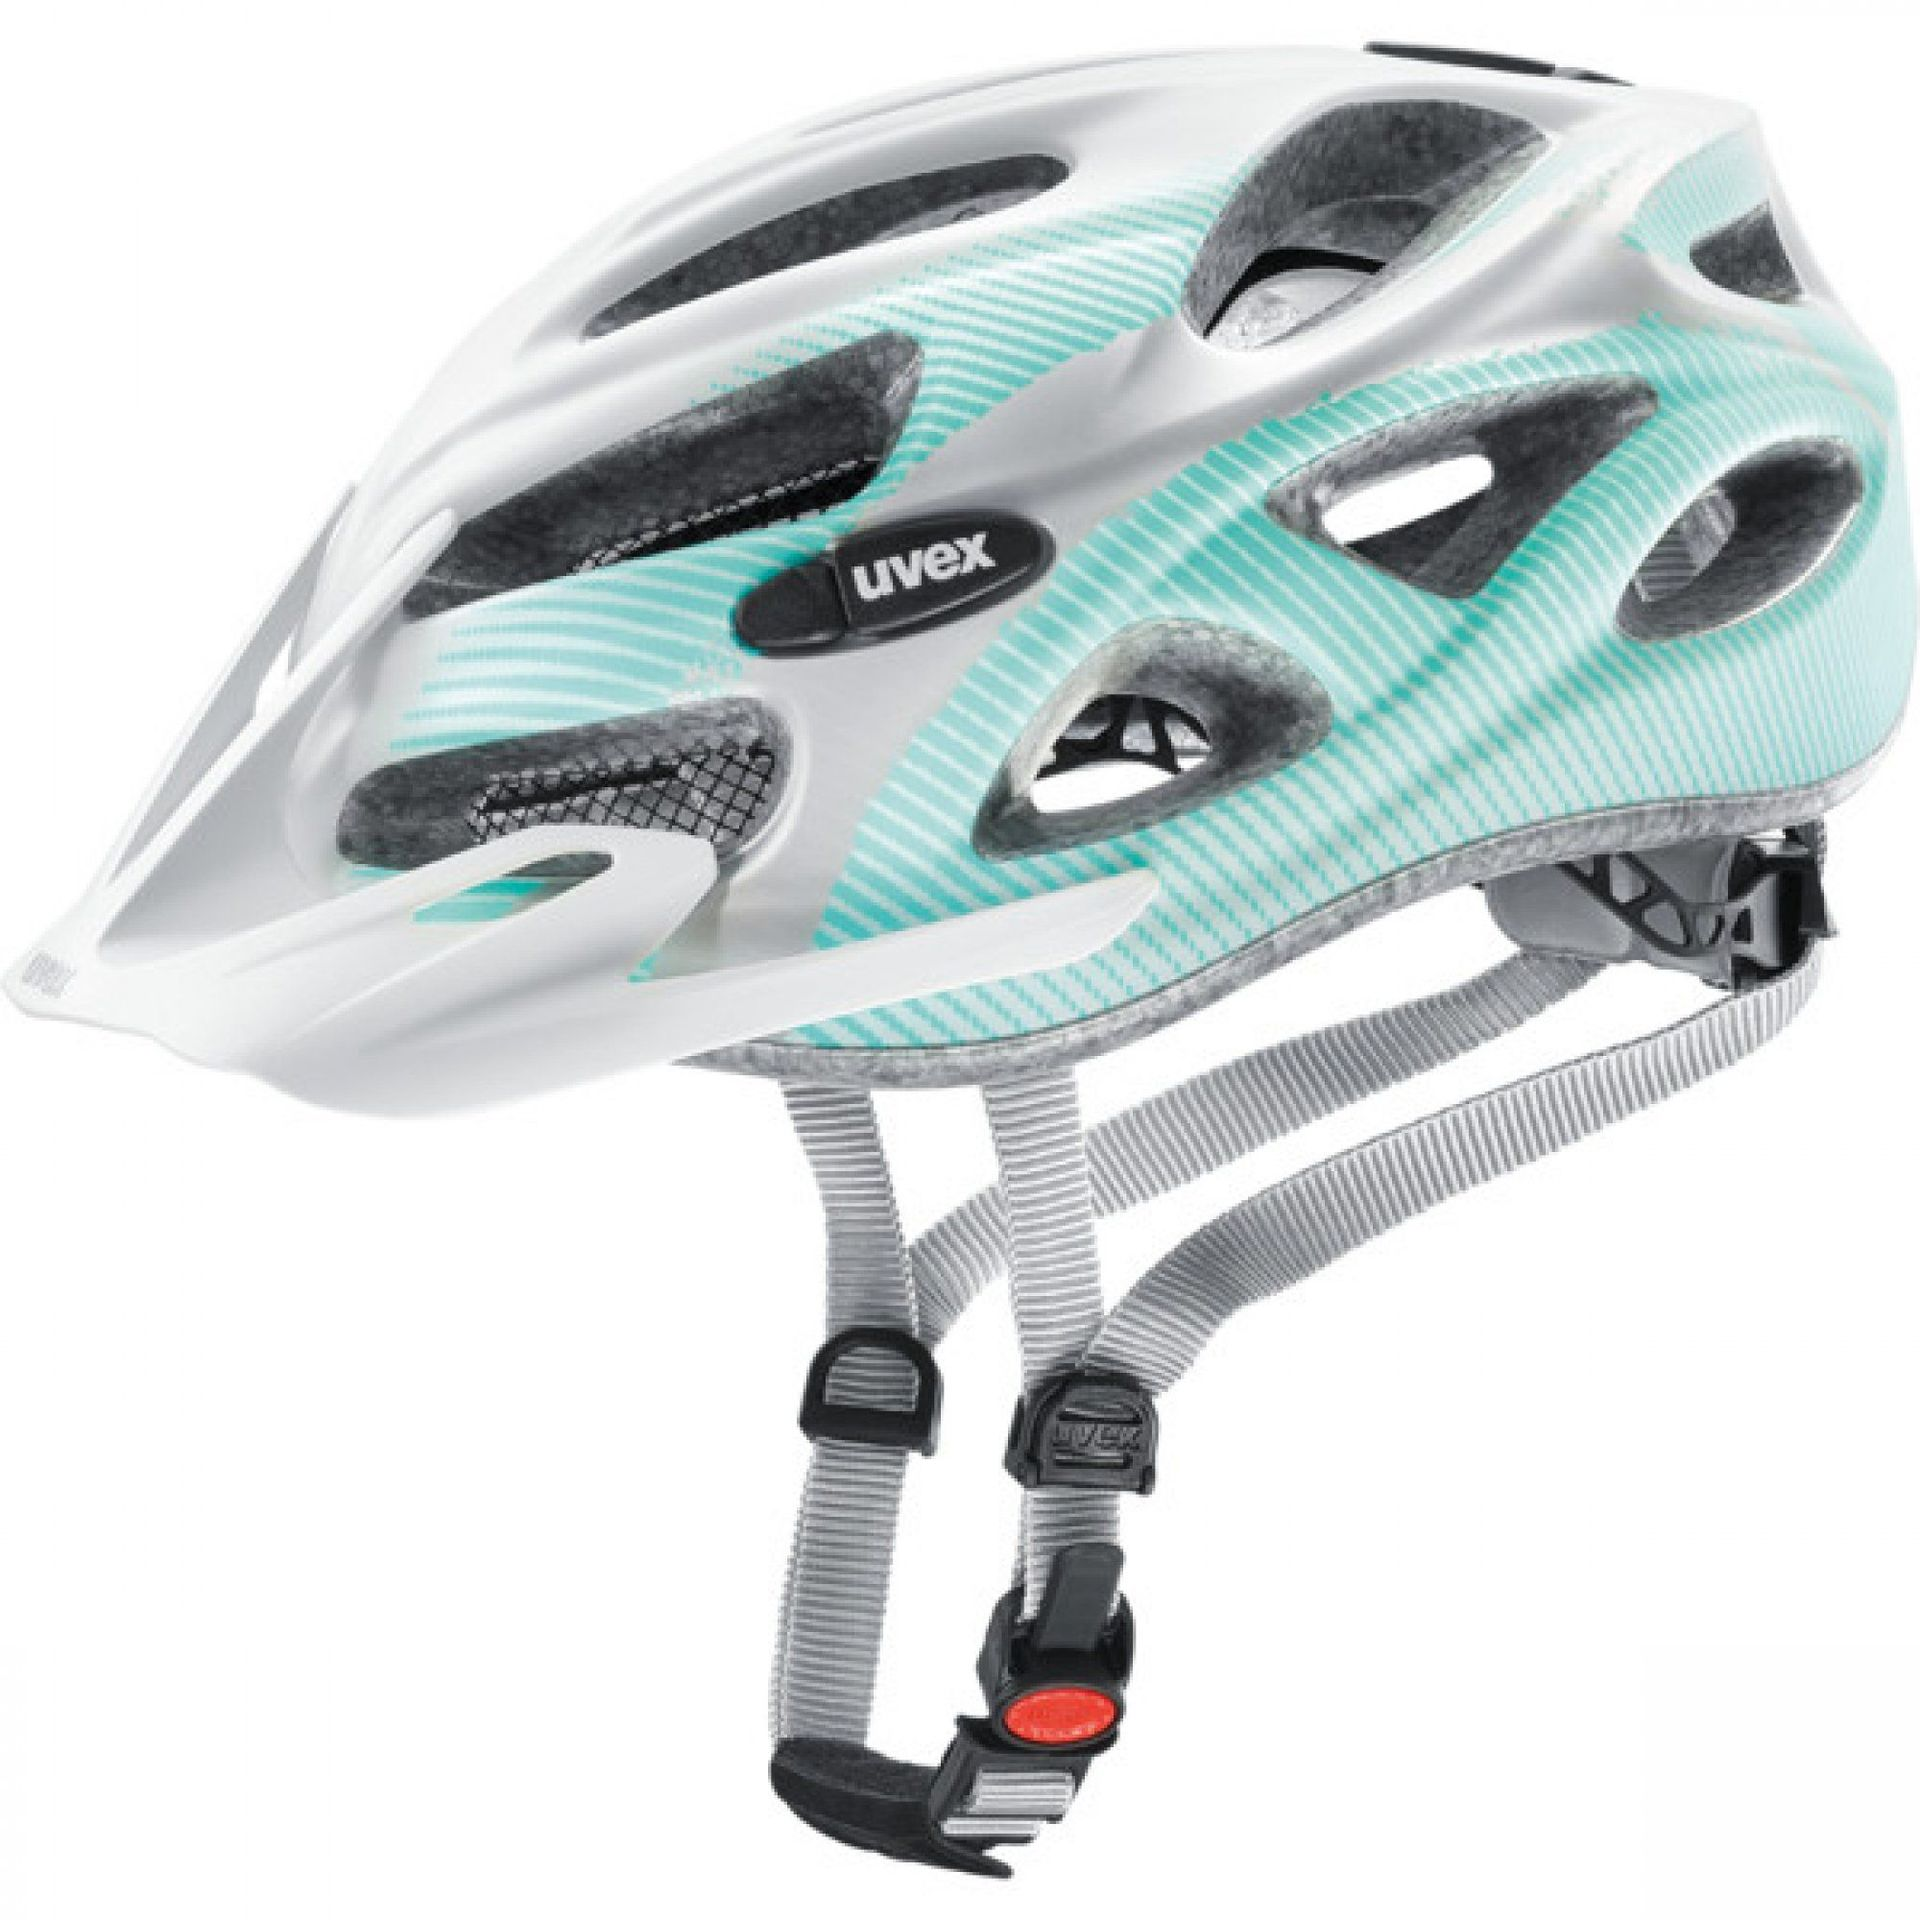 KASK ROWEROWY UVEX ONYX CC 542|06 WHITE|TEAL